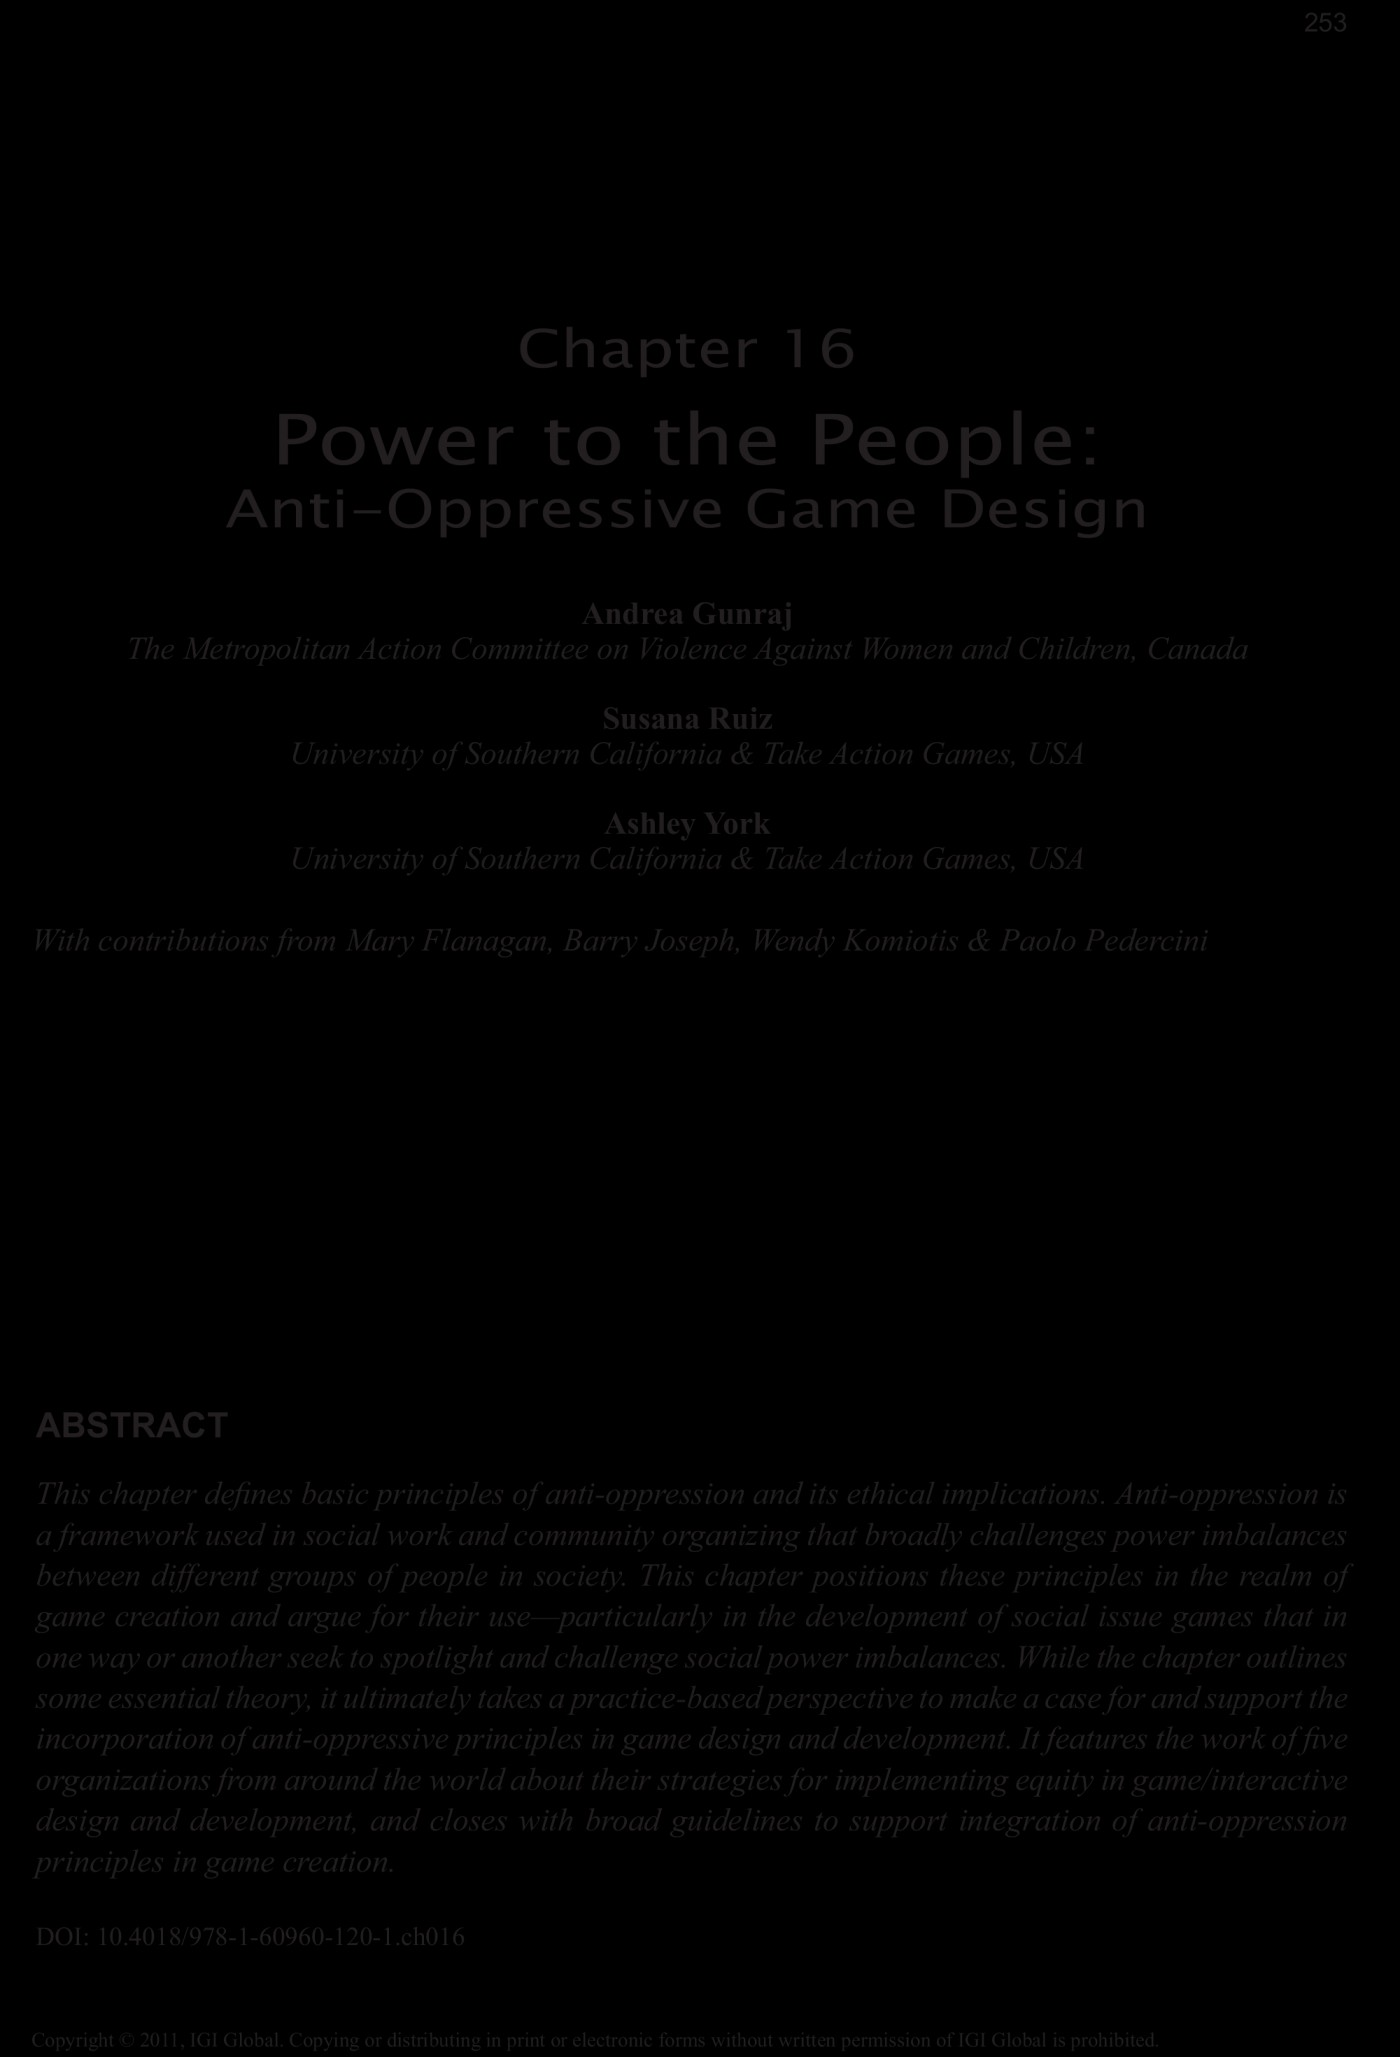 015 Power To The People Short Essay On Famine Marvelous 1400